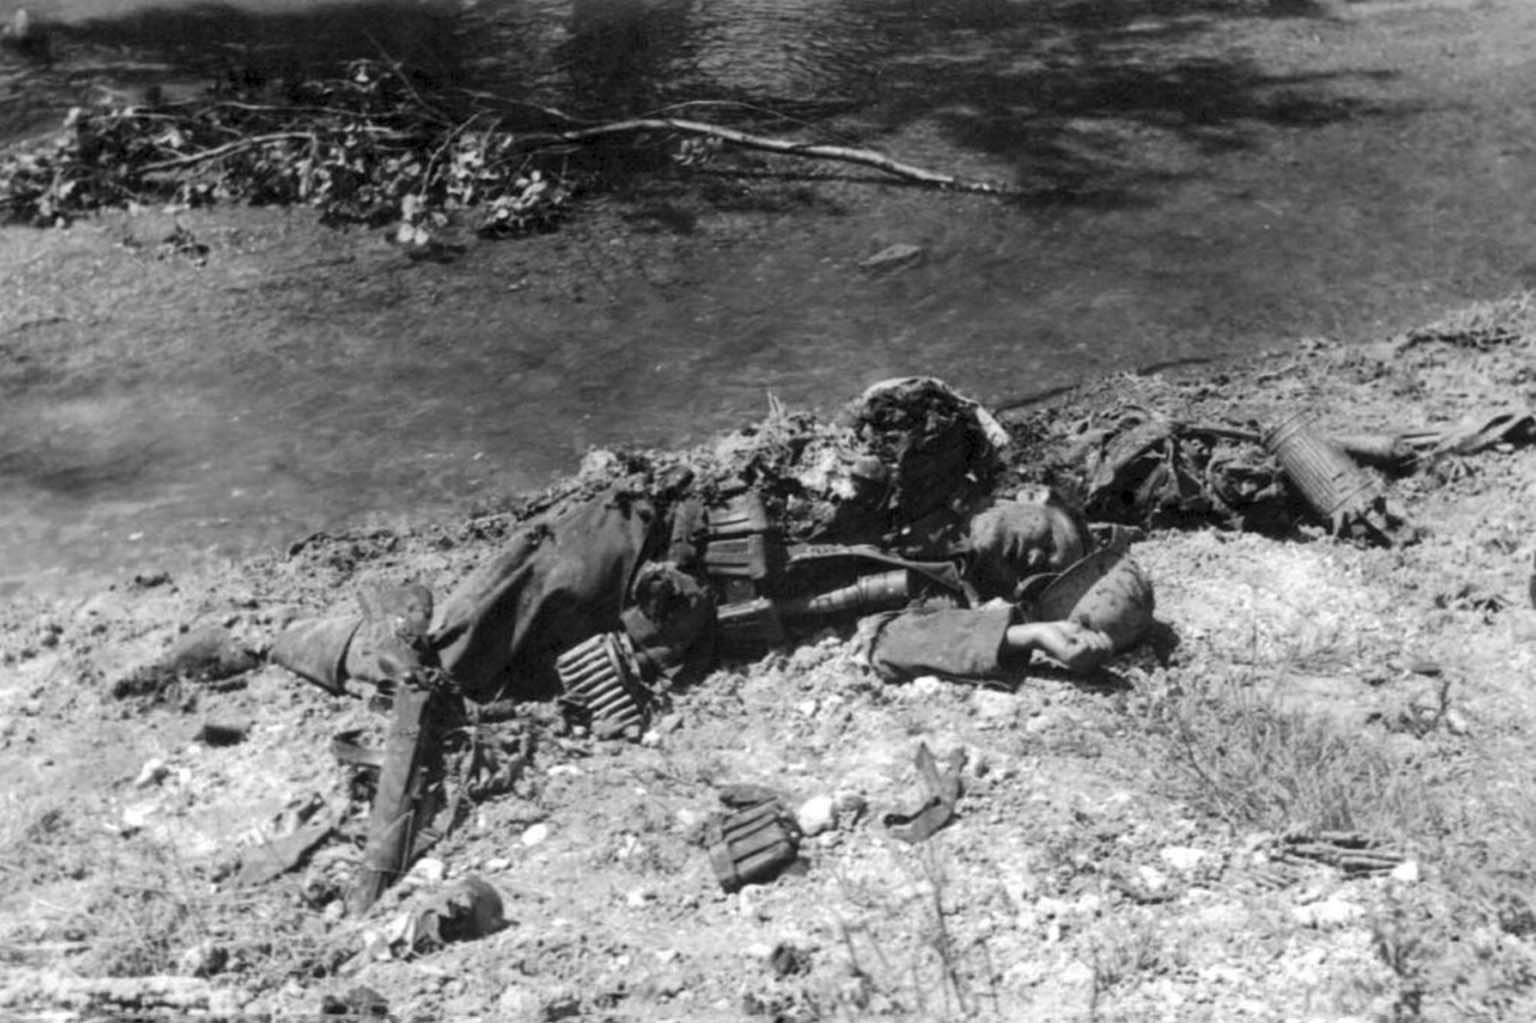 corpse of a German soldier